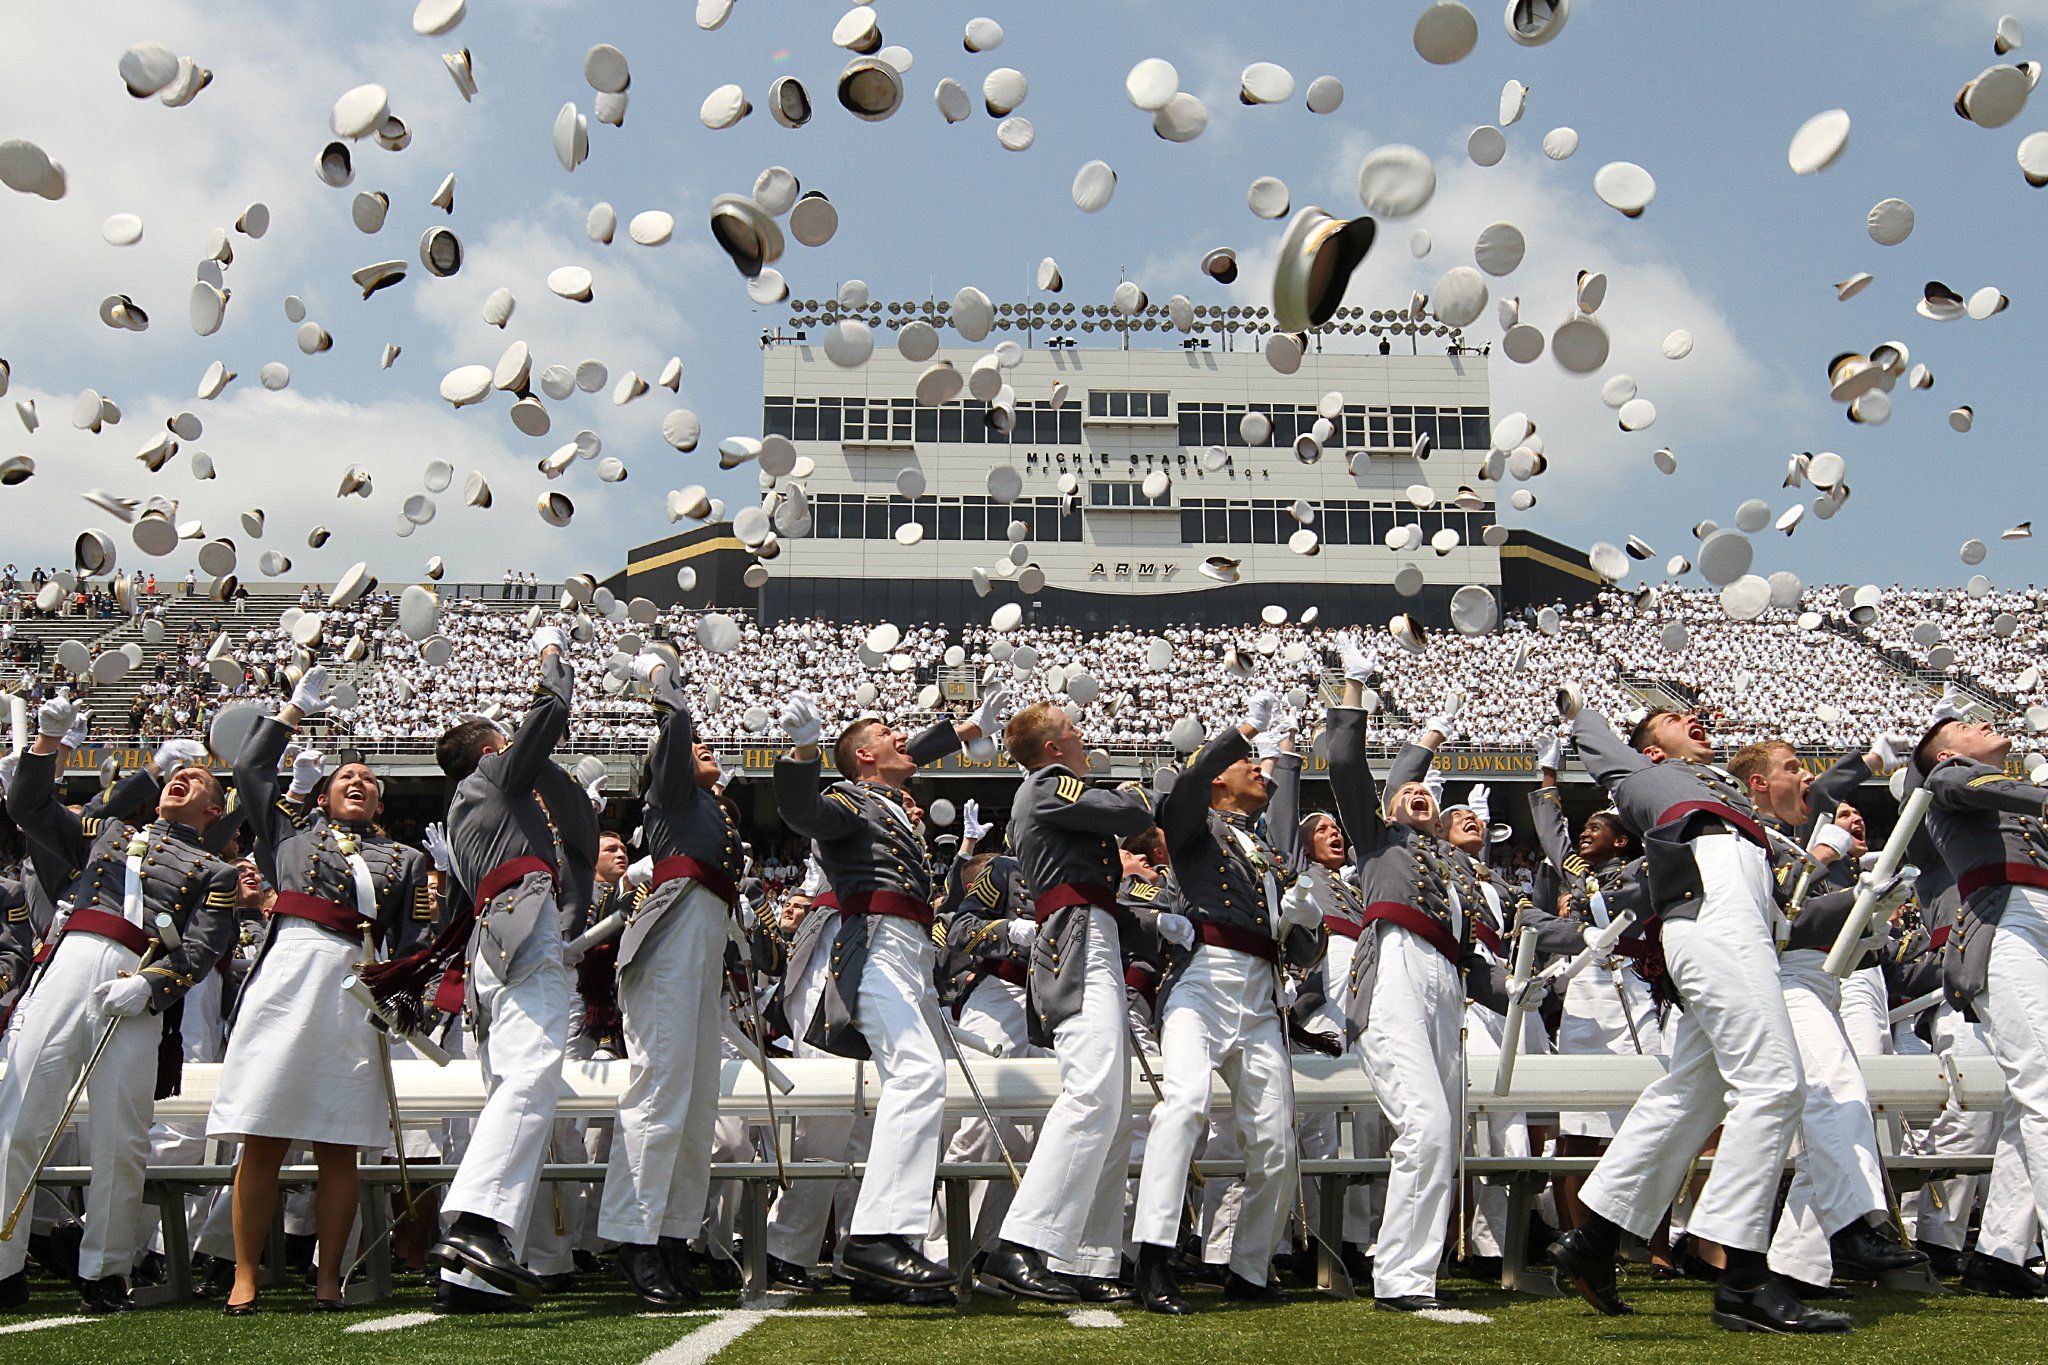 West Point Graduation--Where Army cadets become officers. #HOOAH #GoArmy